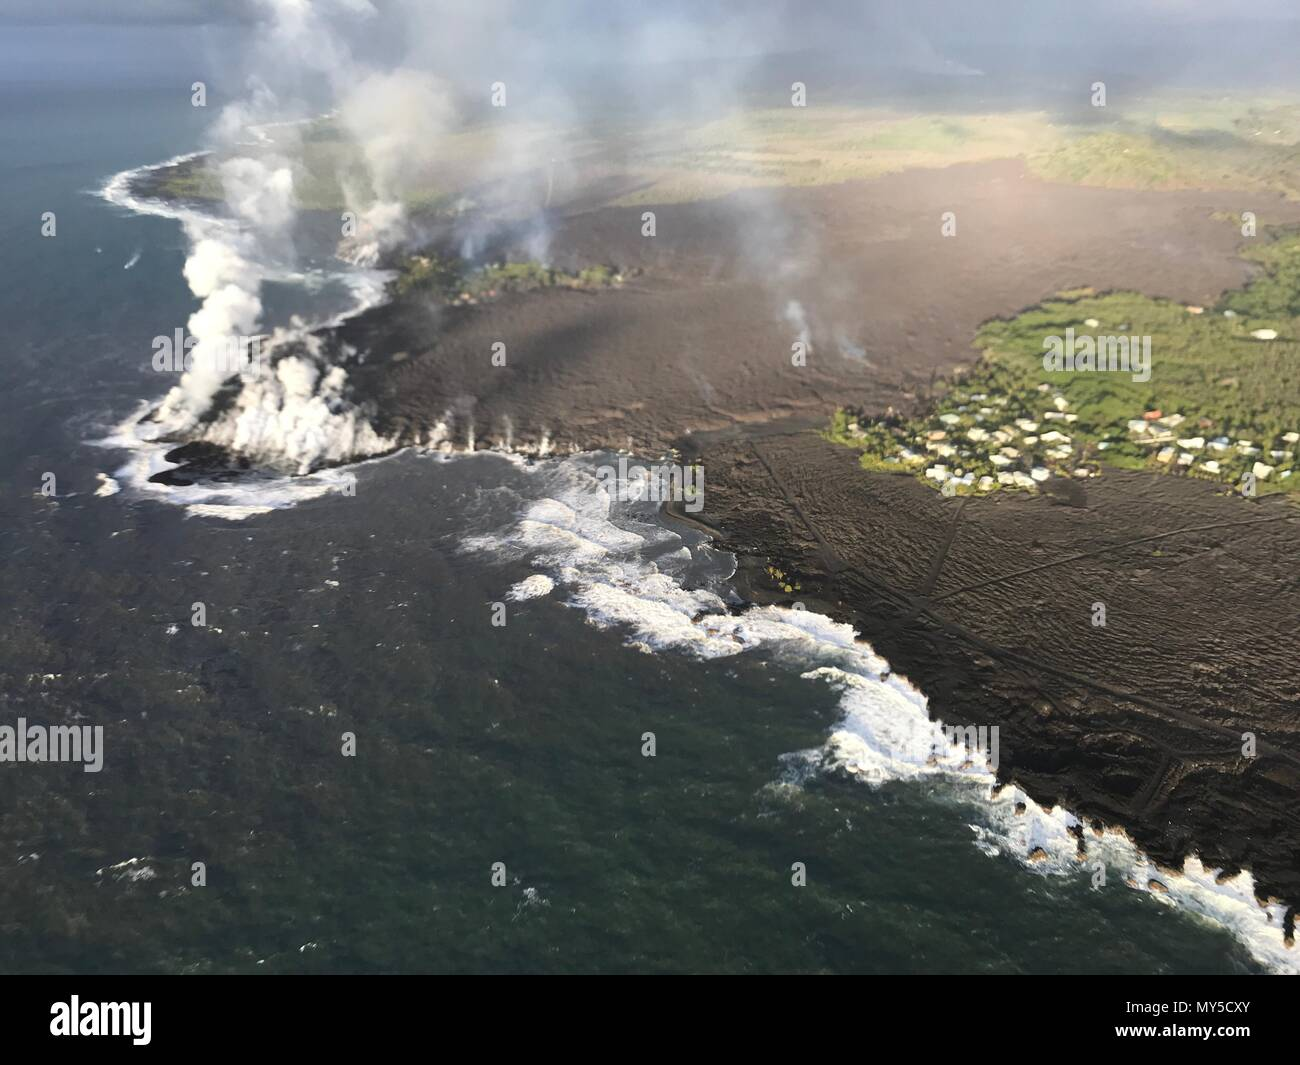 Lava flows into Kapoho Bay destroying forest and homes in the Vacationland area caused by the eruption of the Kilauea volcano June 5, 2018 in Hawaii. The recent eruption continues destroying homes, forcing evacuations and spewing lava and poison gas on the Big Island of Hawaii. - Stock Image